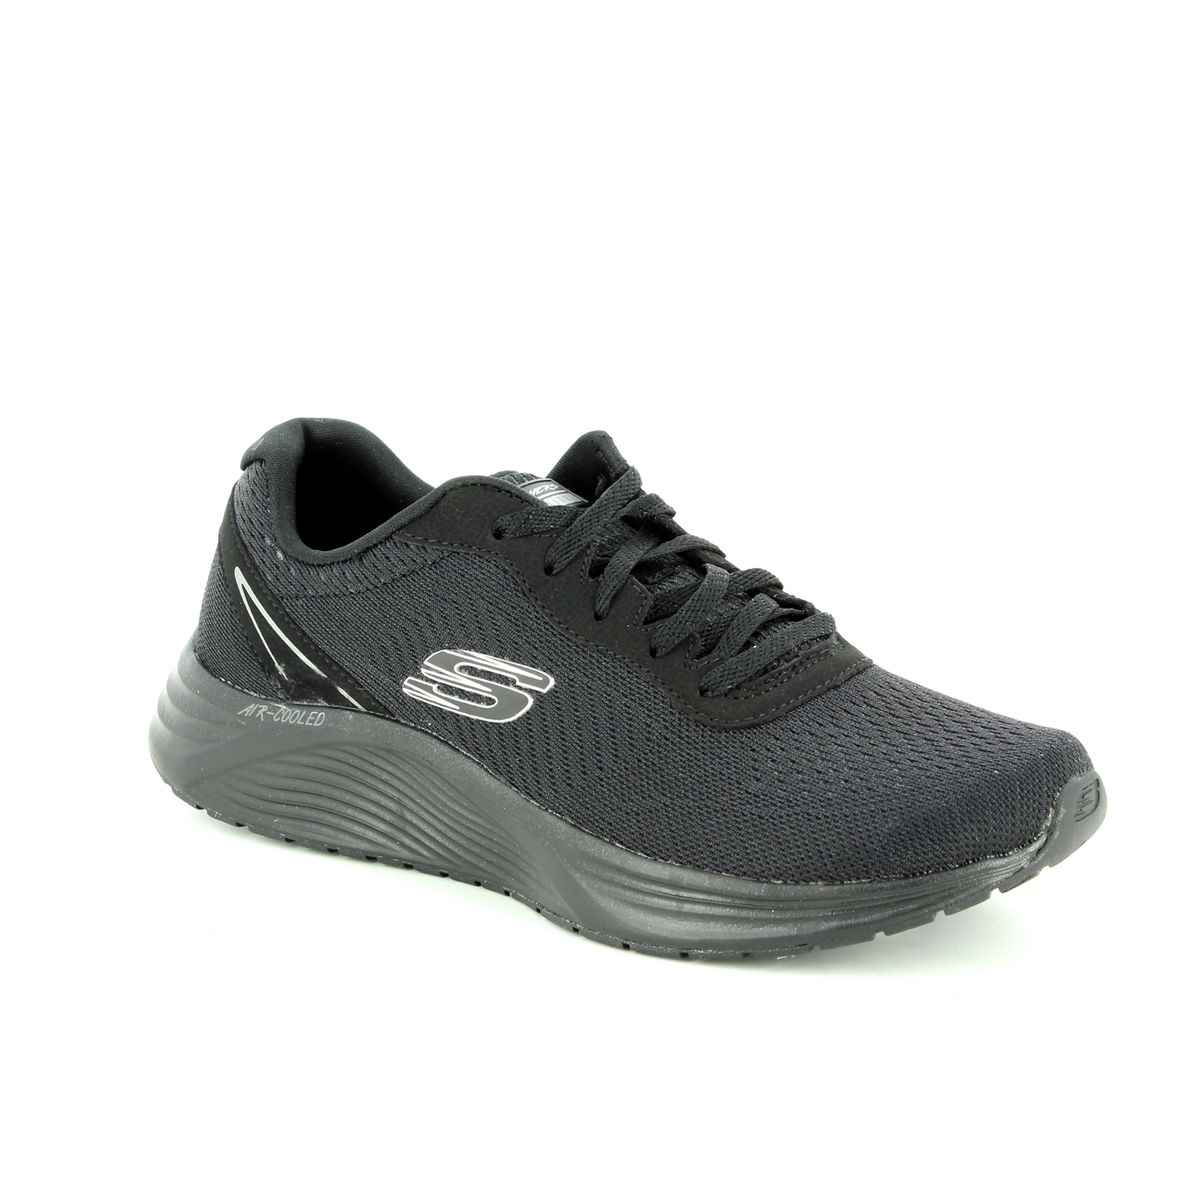 6c6b888eaa57 Skechers Skyline 13047 BBK Black trainers